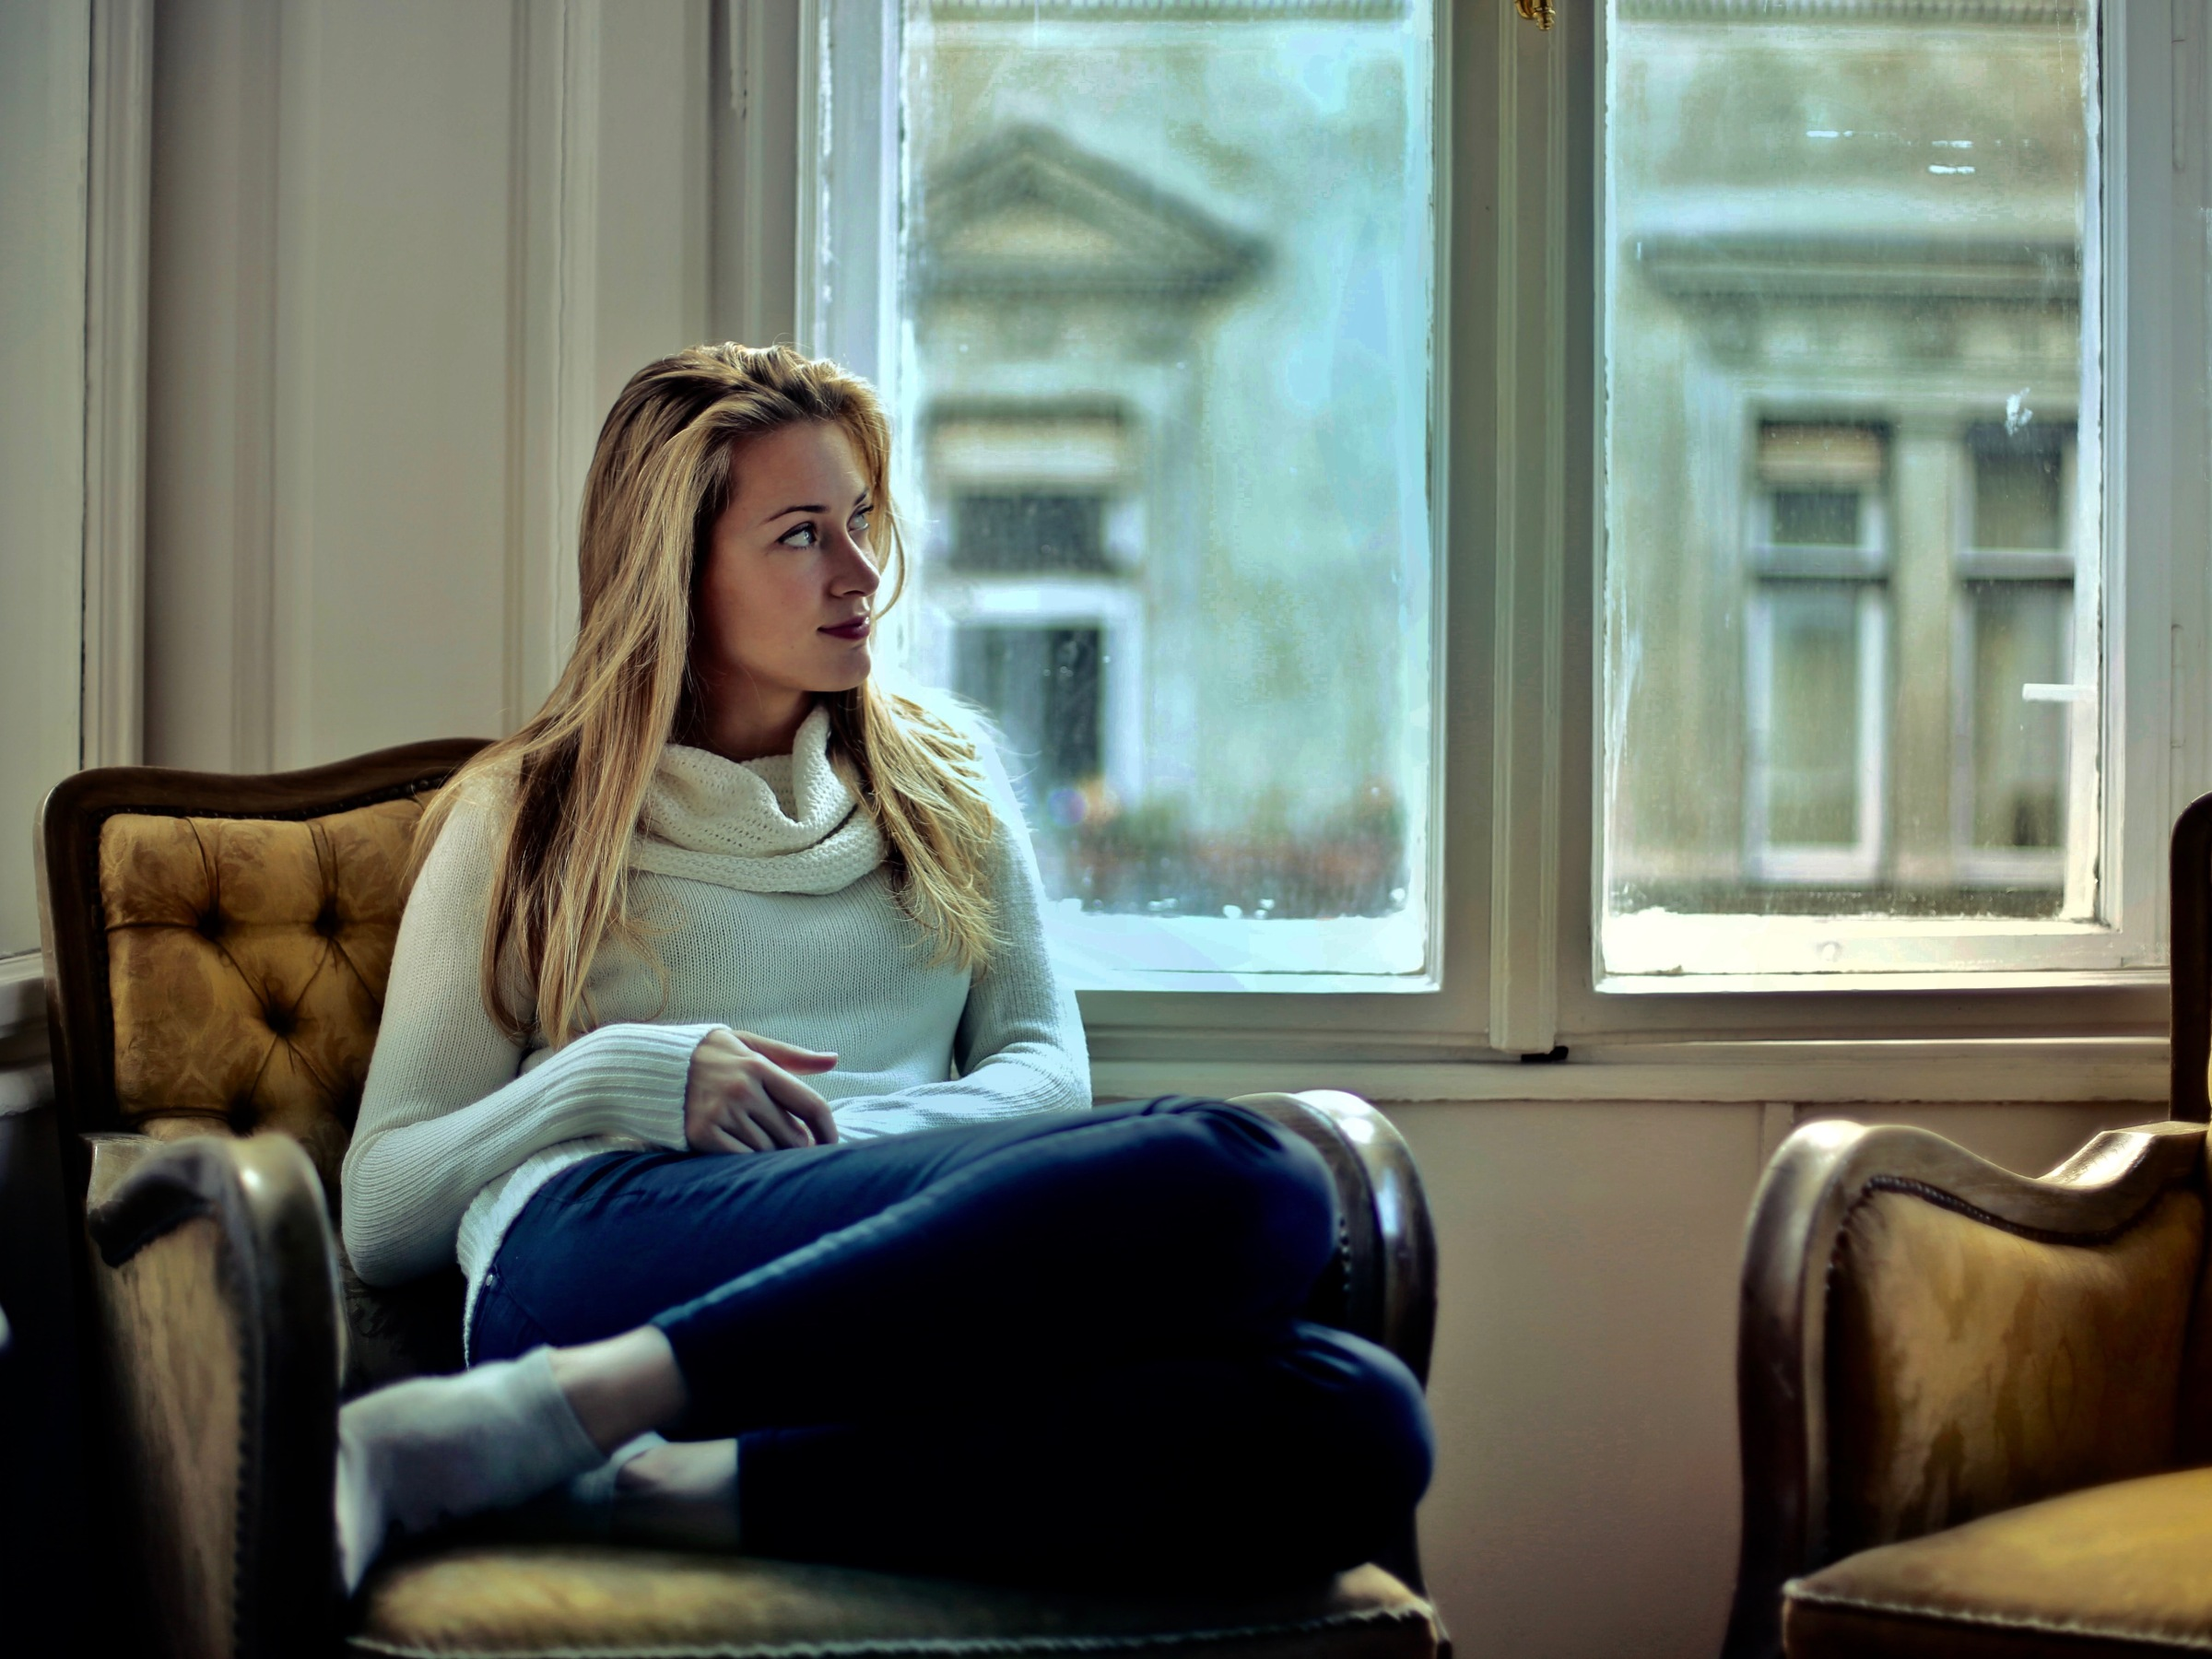 woman sitting on couch near window